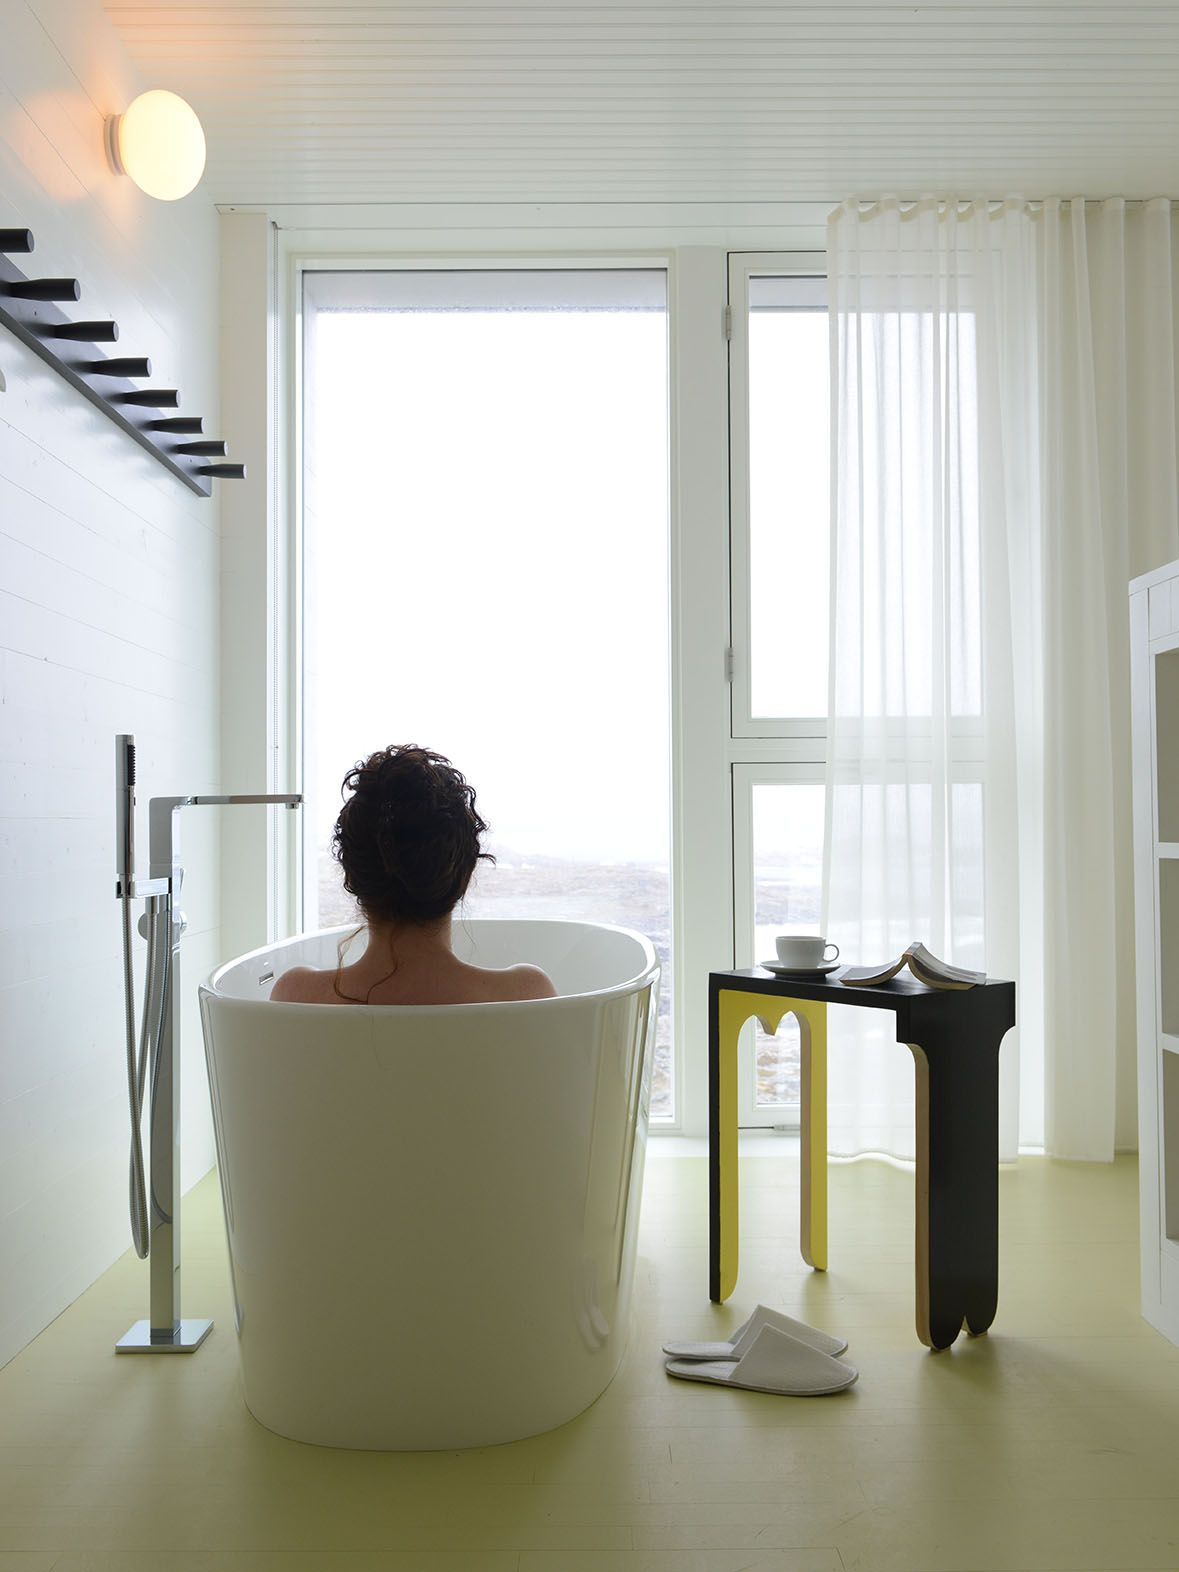 Modern/contemporary Oval Soaking Freestanding Bathtub, 66 X 30 X Inches.